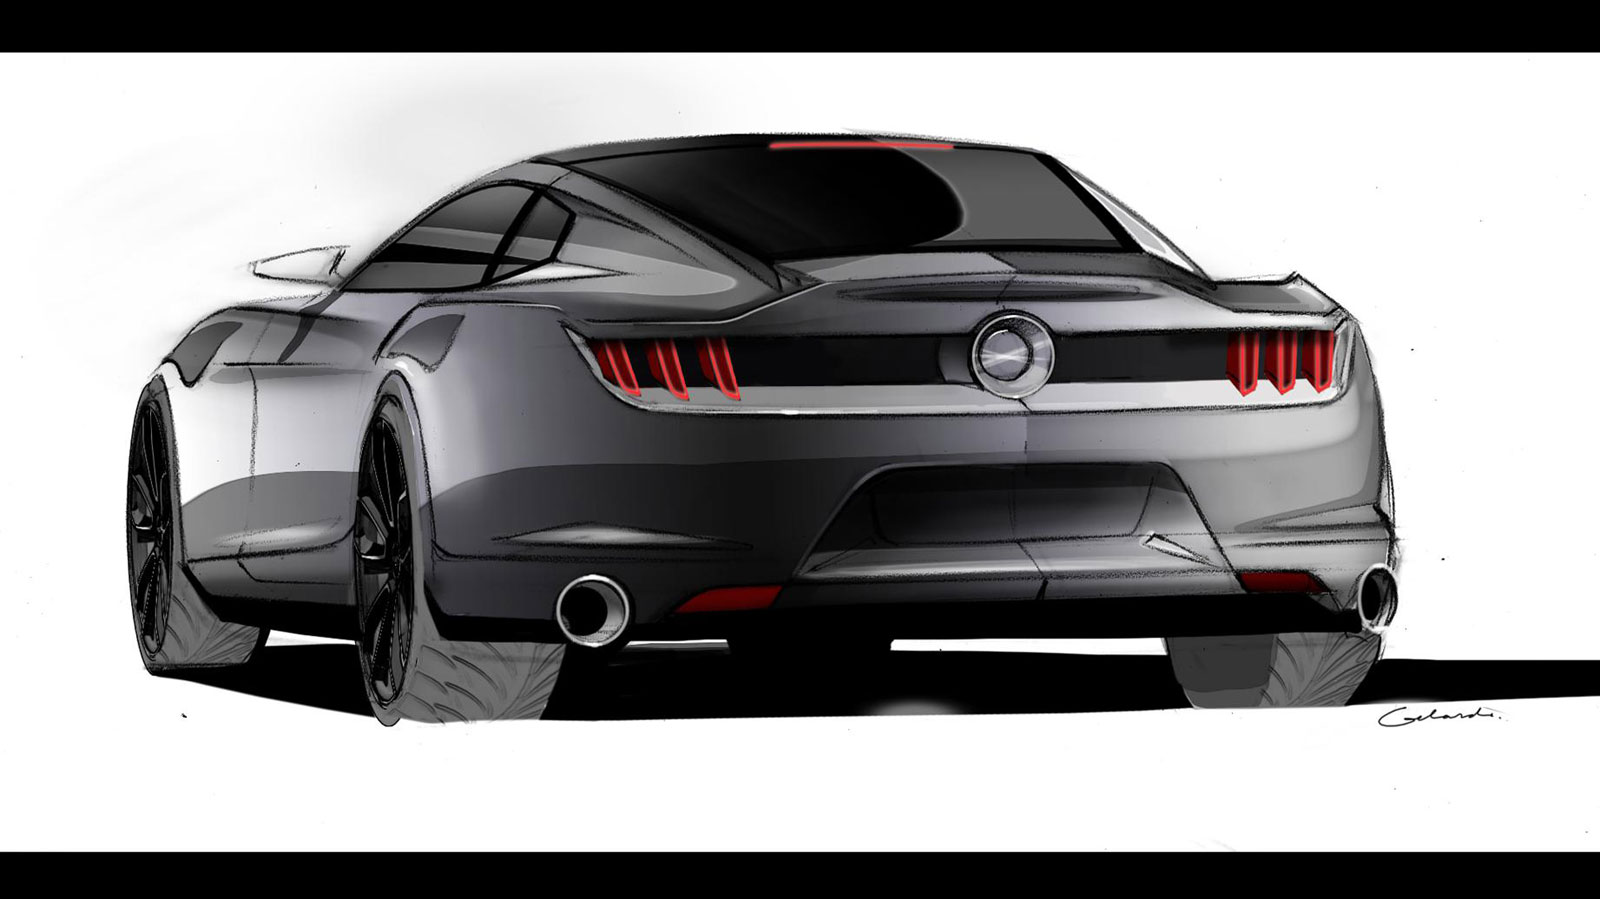 2015 Ford Mustang Ideation Design Sketch Car Body Design